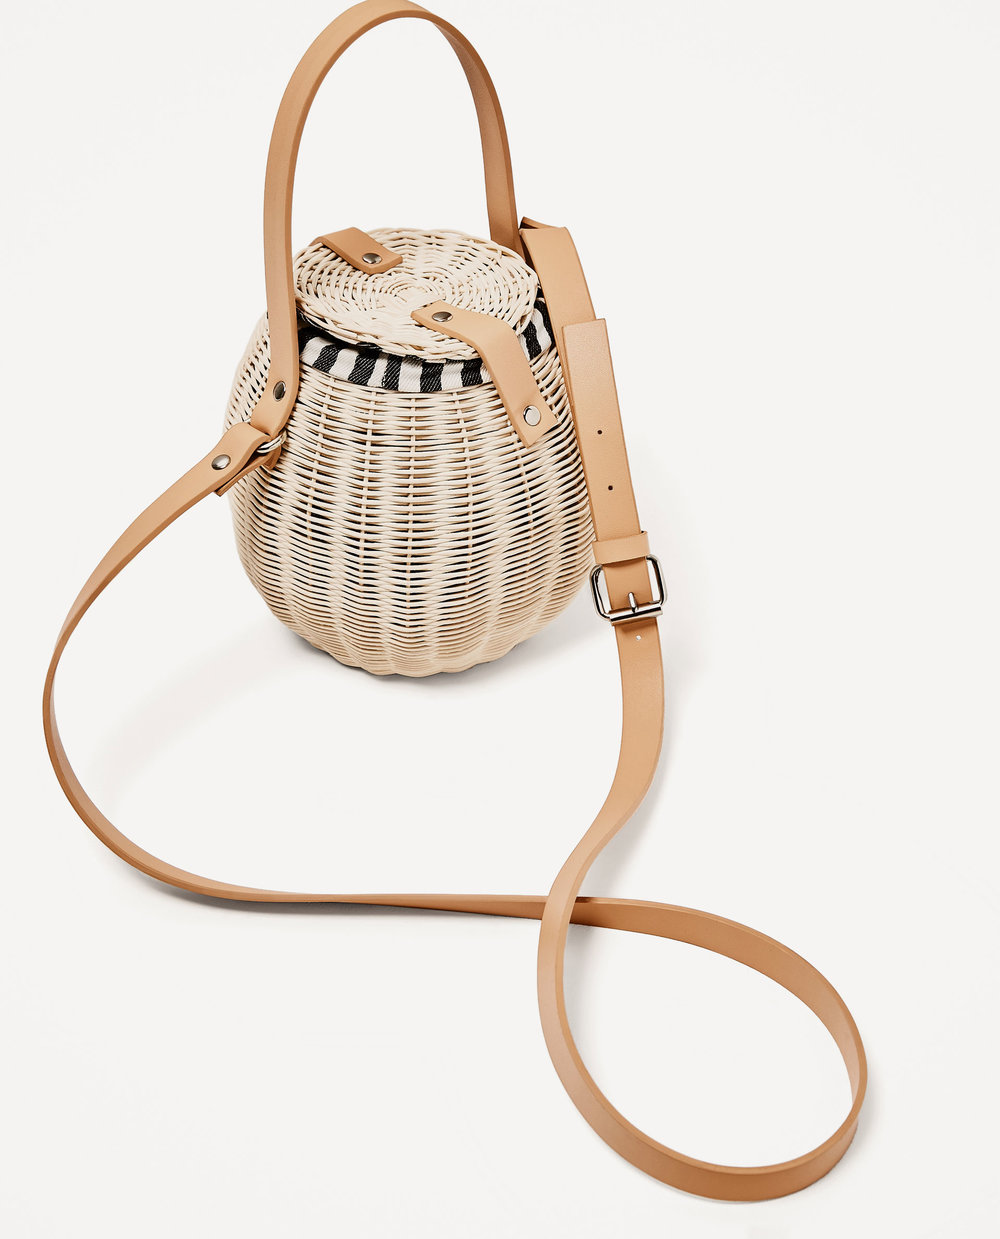 The perfect summer bag, inexpensive, pretty and cool.